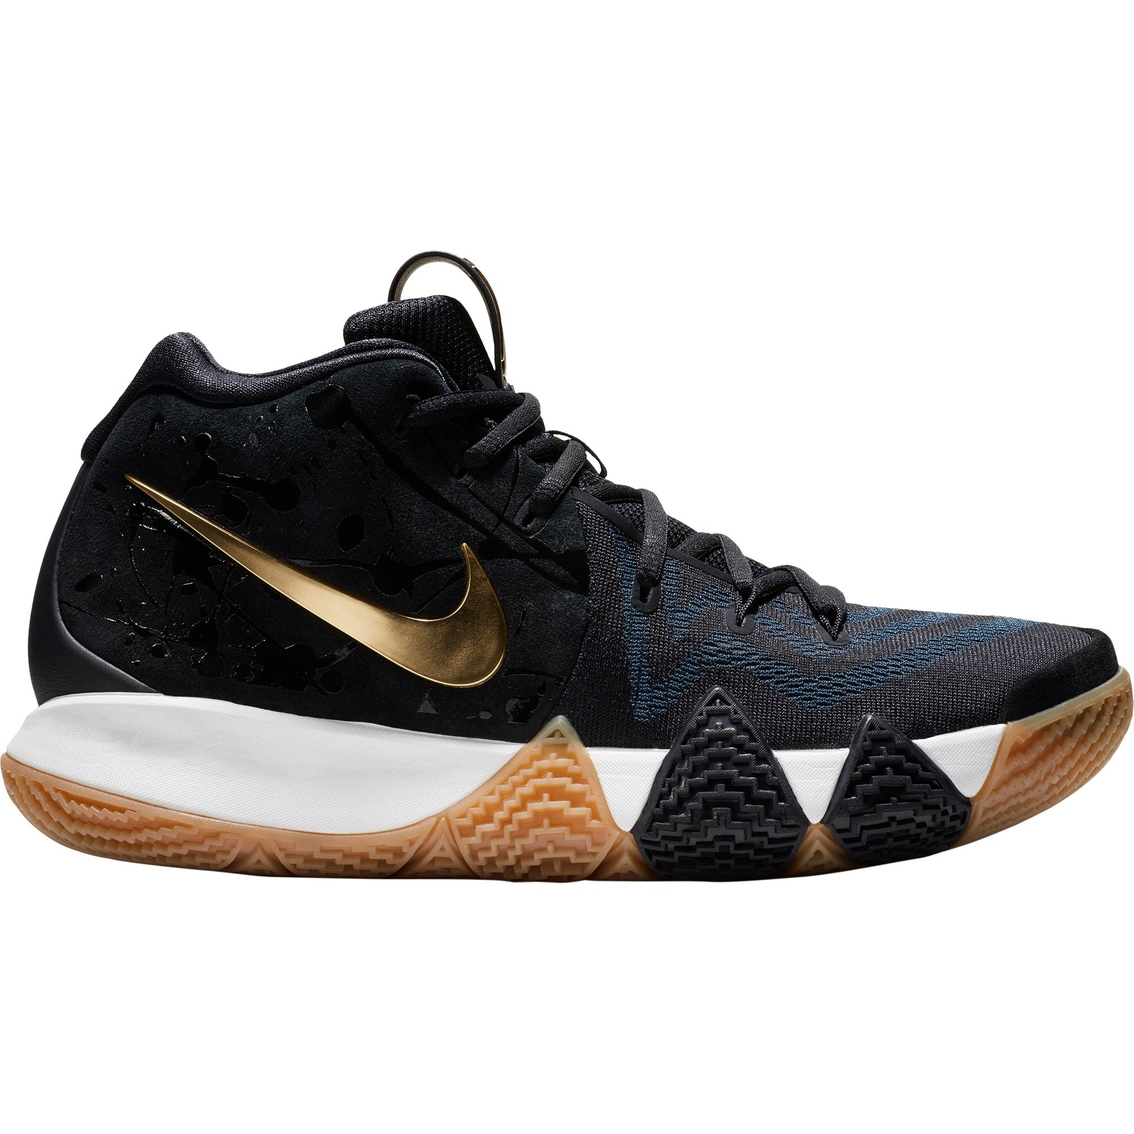 quality design 7d613 f5533 Nike Men's Kyrie 4 Basketball Shoes | Basketball | Back To ...